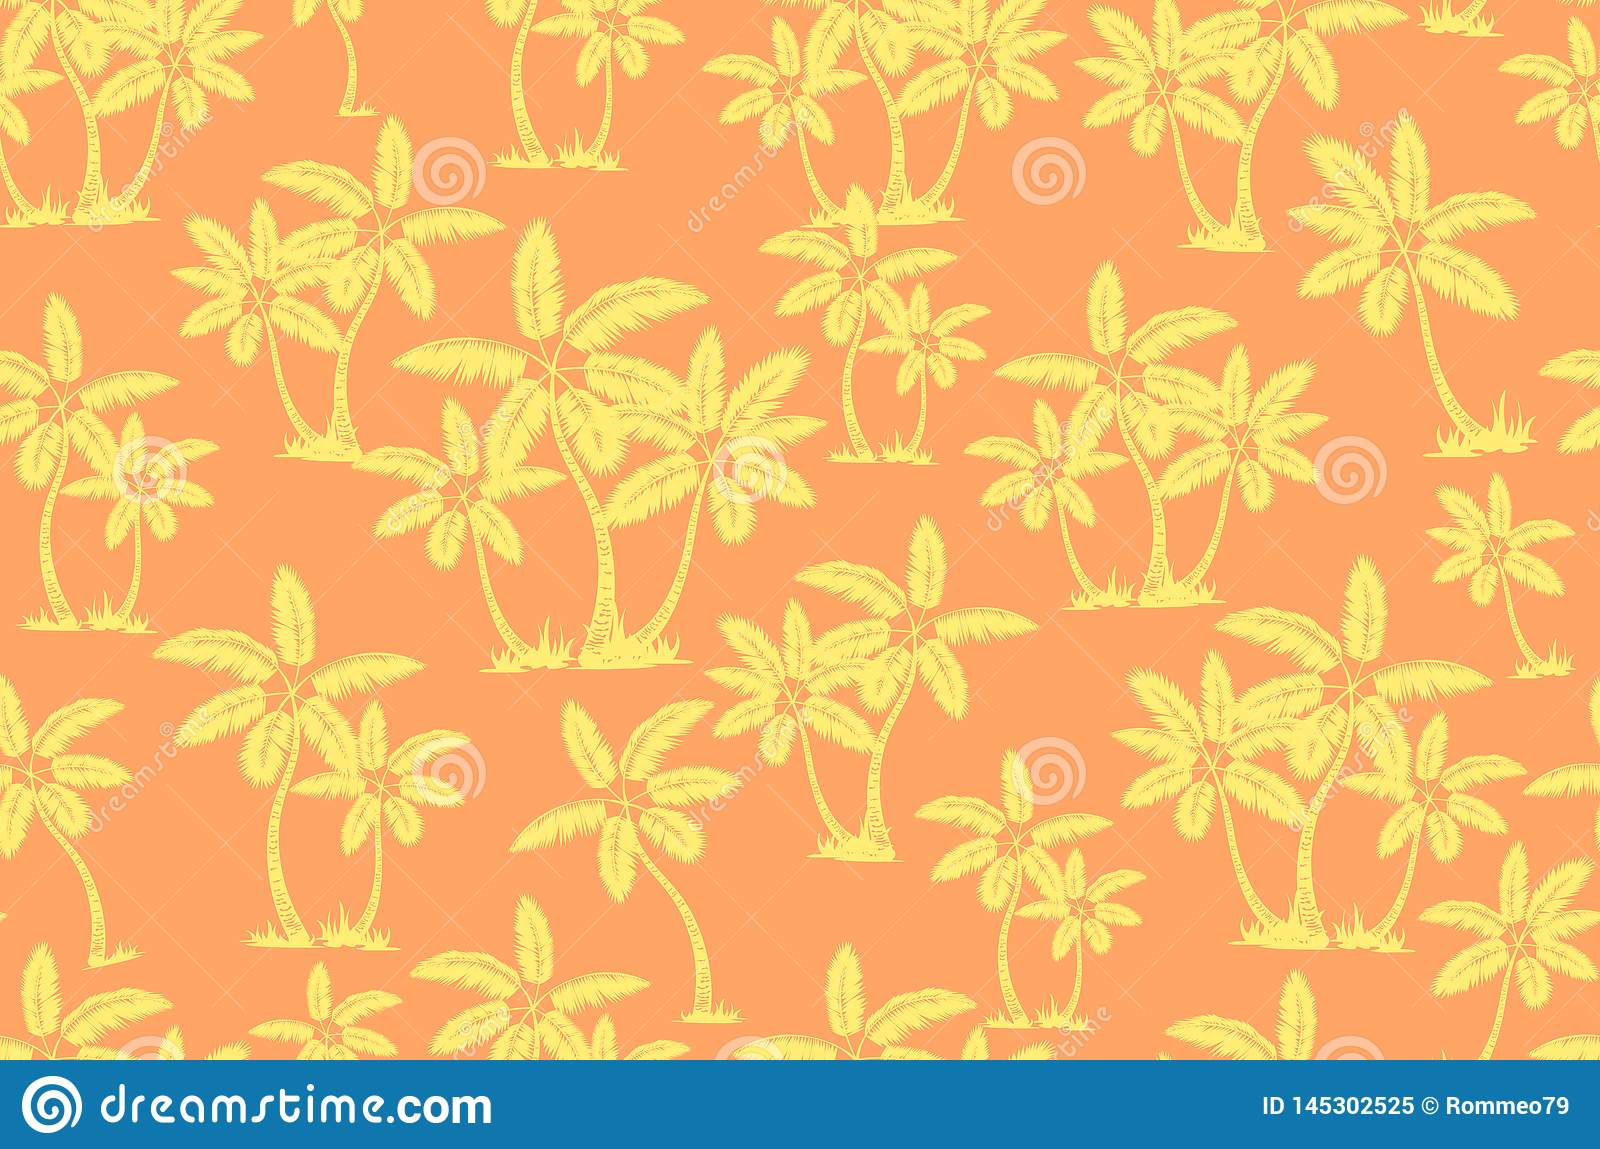 Seamless tropical palms pattern. Summer endless hand drawn vector background of palm trees can be used for wallpaper, wrapping